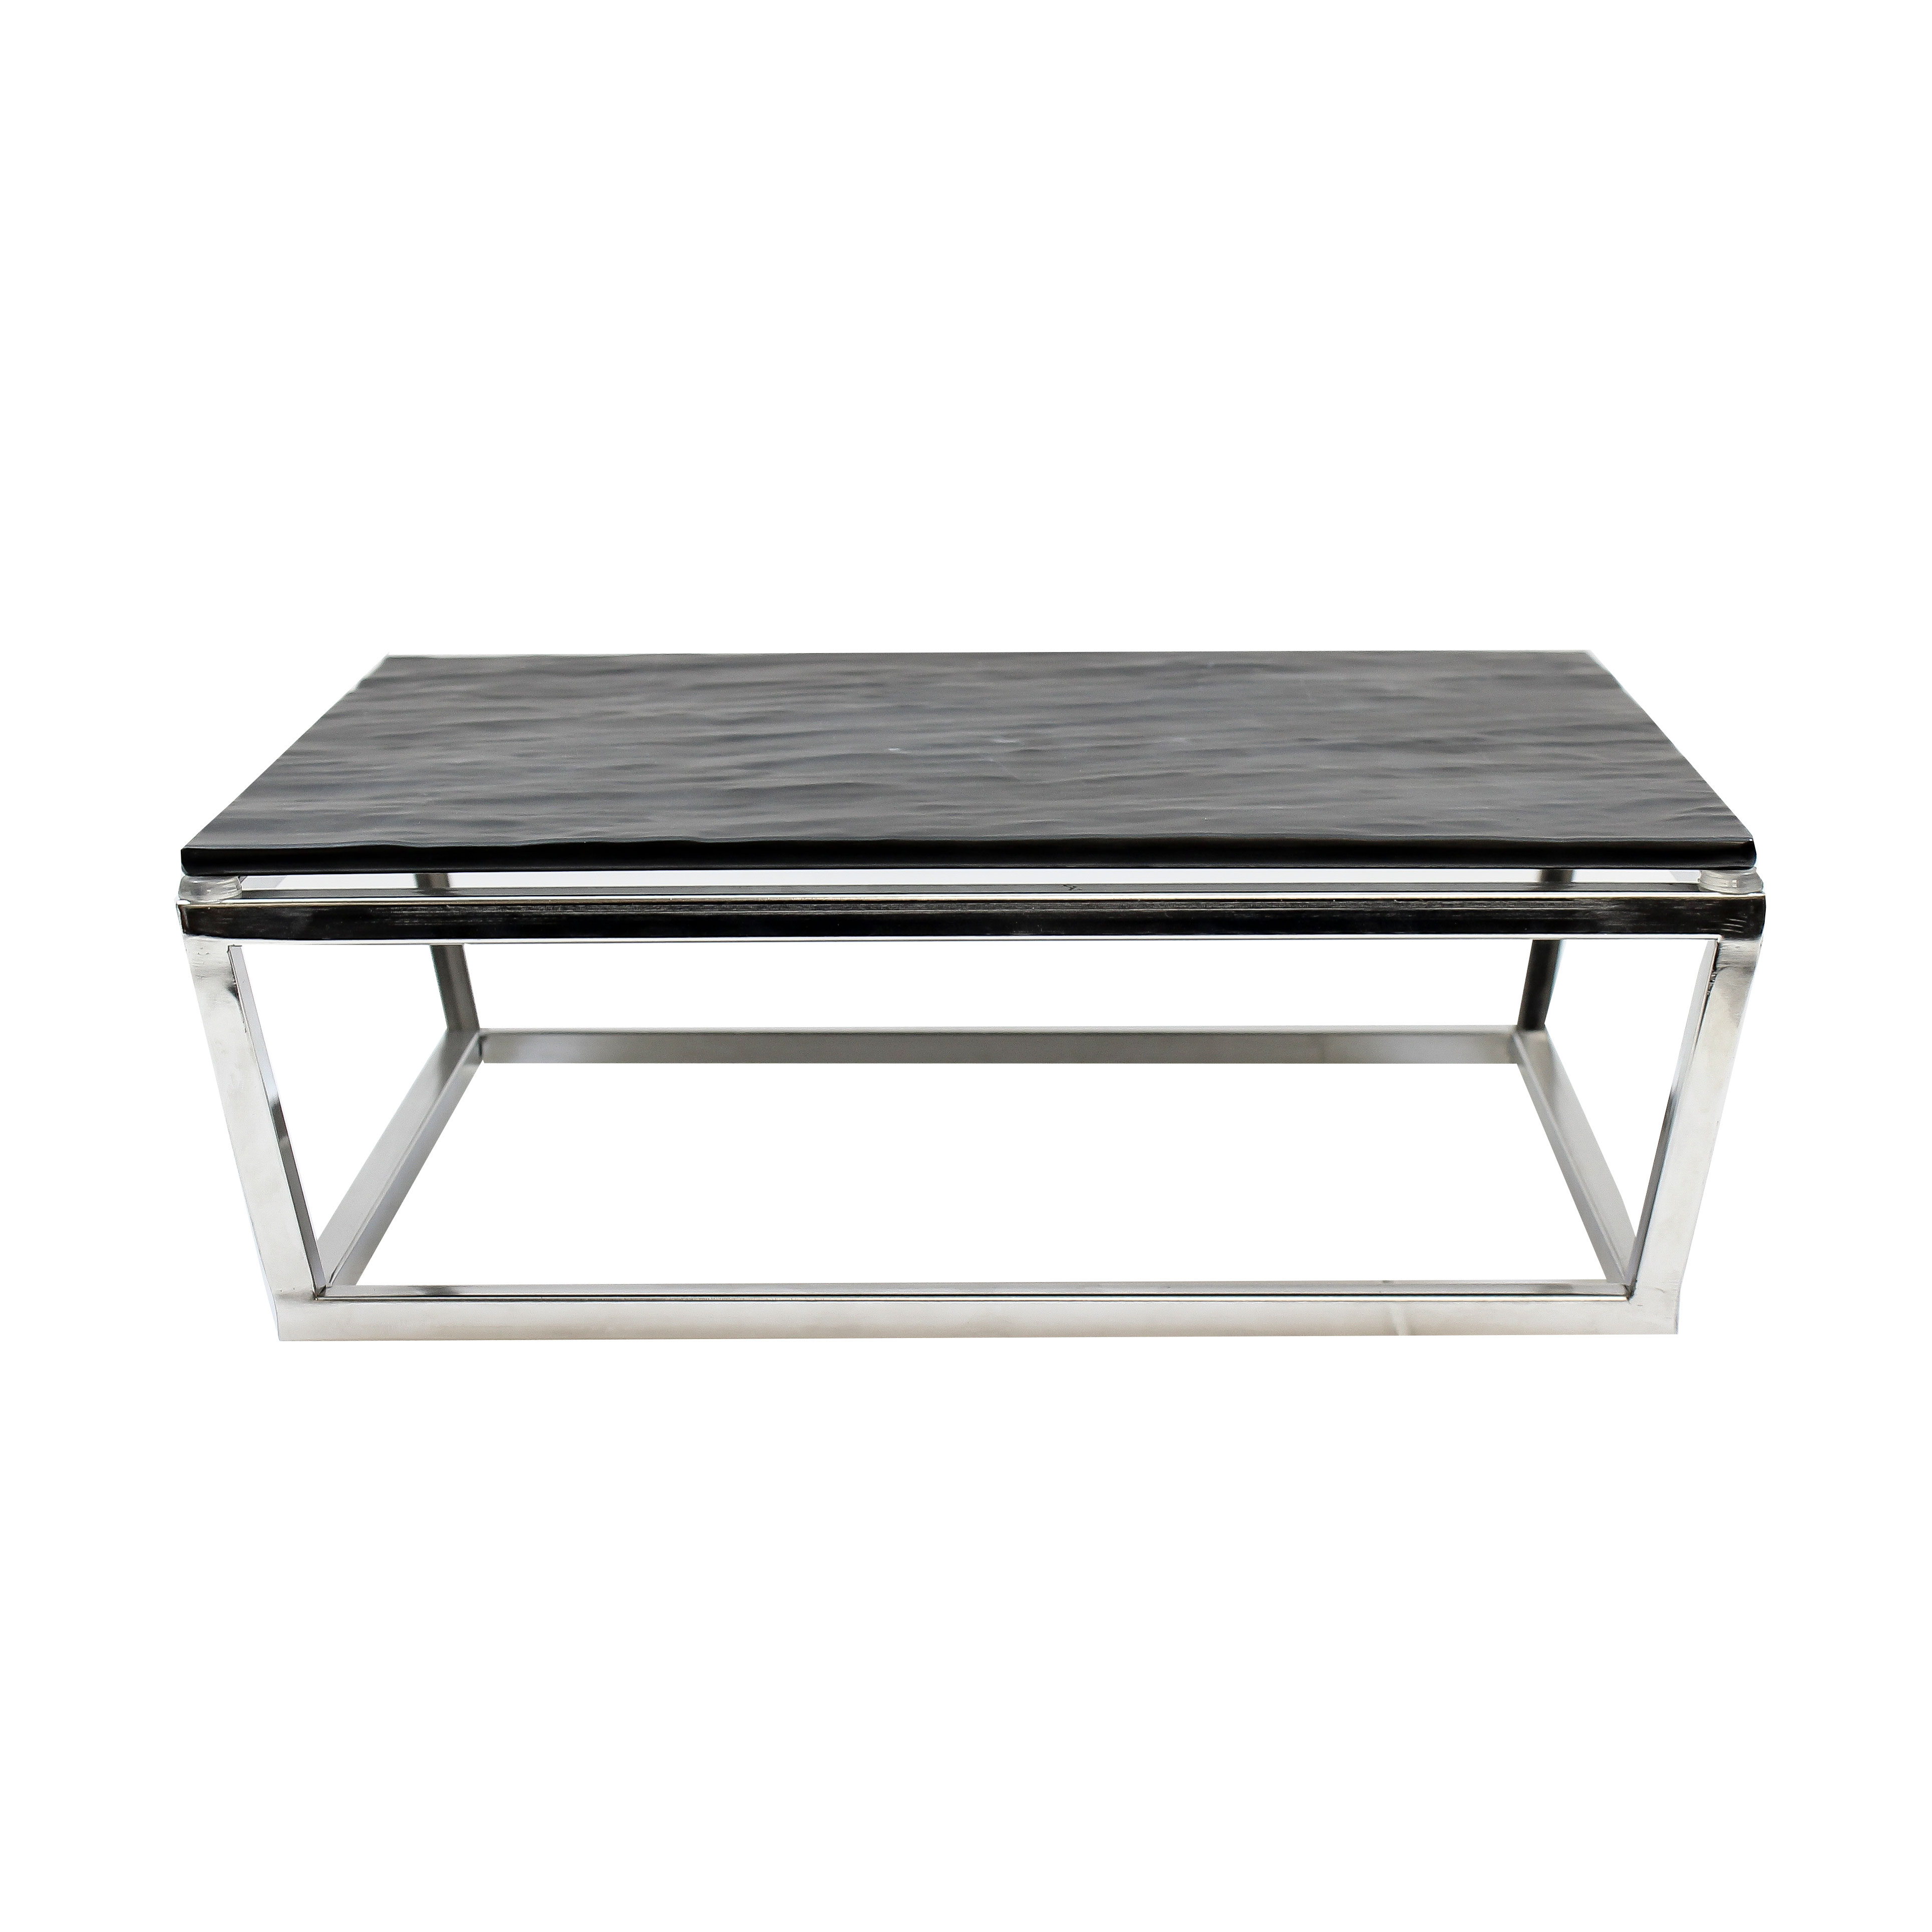 TableCraft Products 21002 display riser, individual